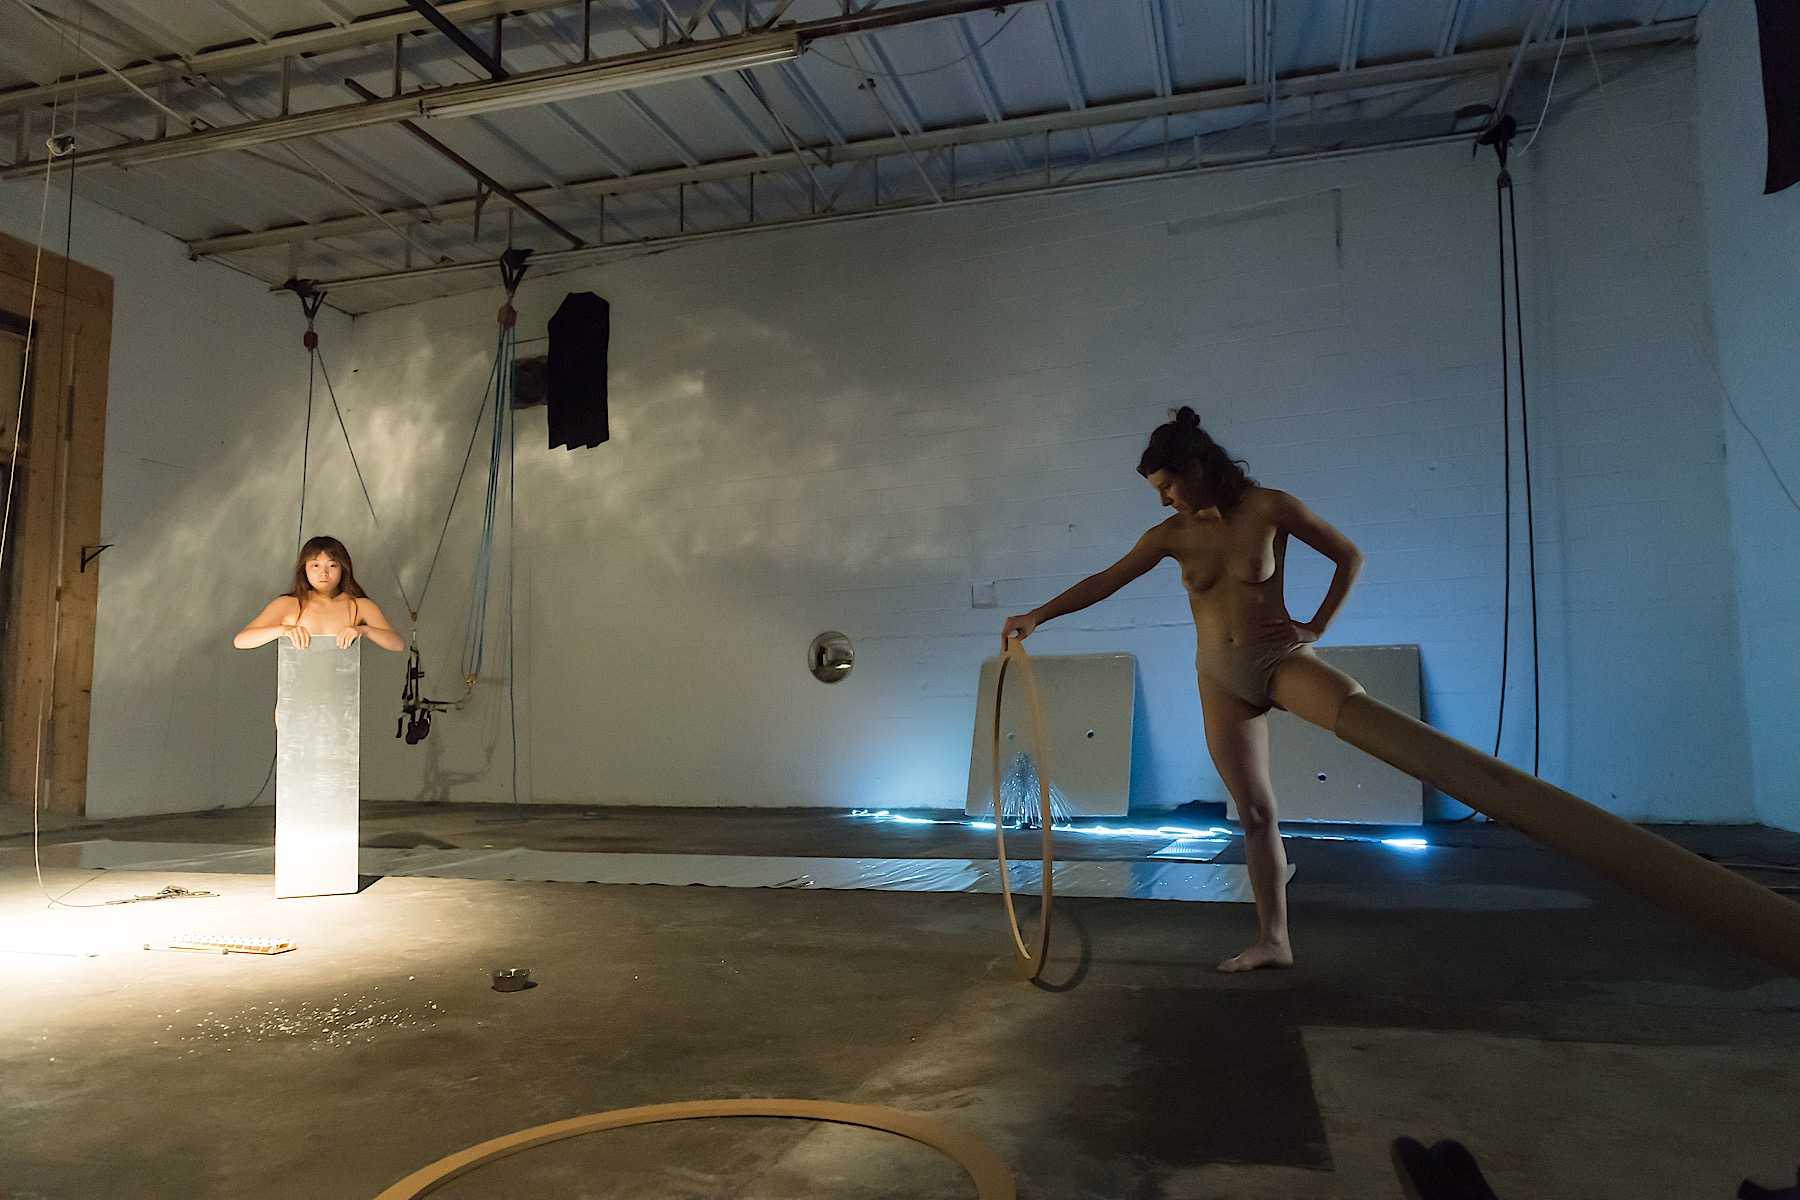 Person holding a plastic mirror and another person with their leg inserted in a long cardboard tube and holding a wooden hoop